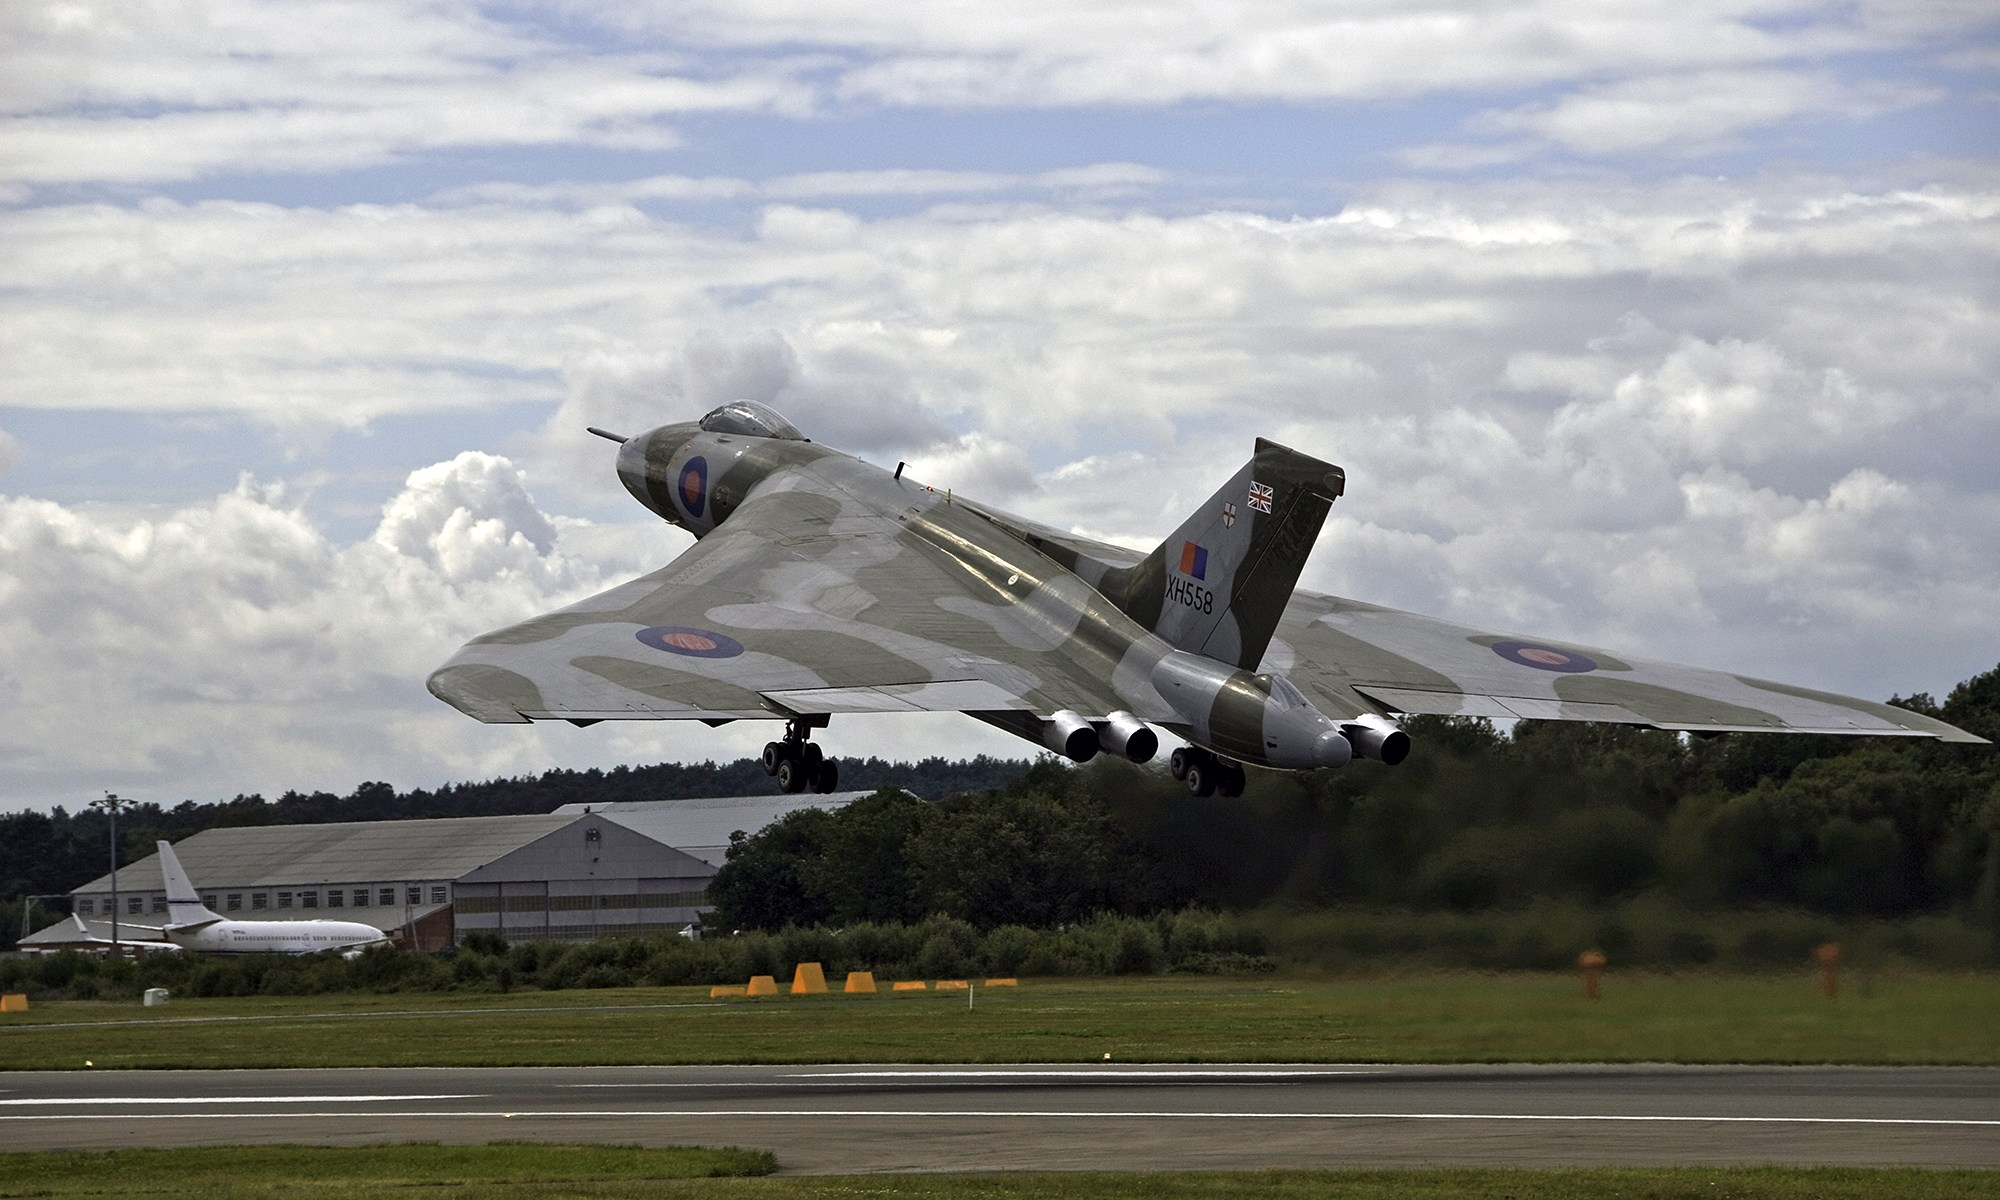 Avro Vulcan XH558 Bomber at Takeoff